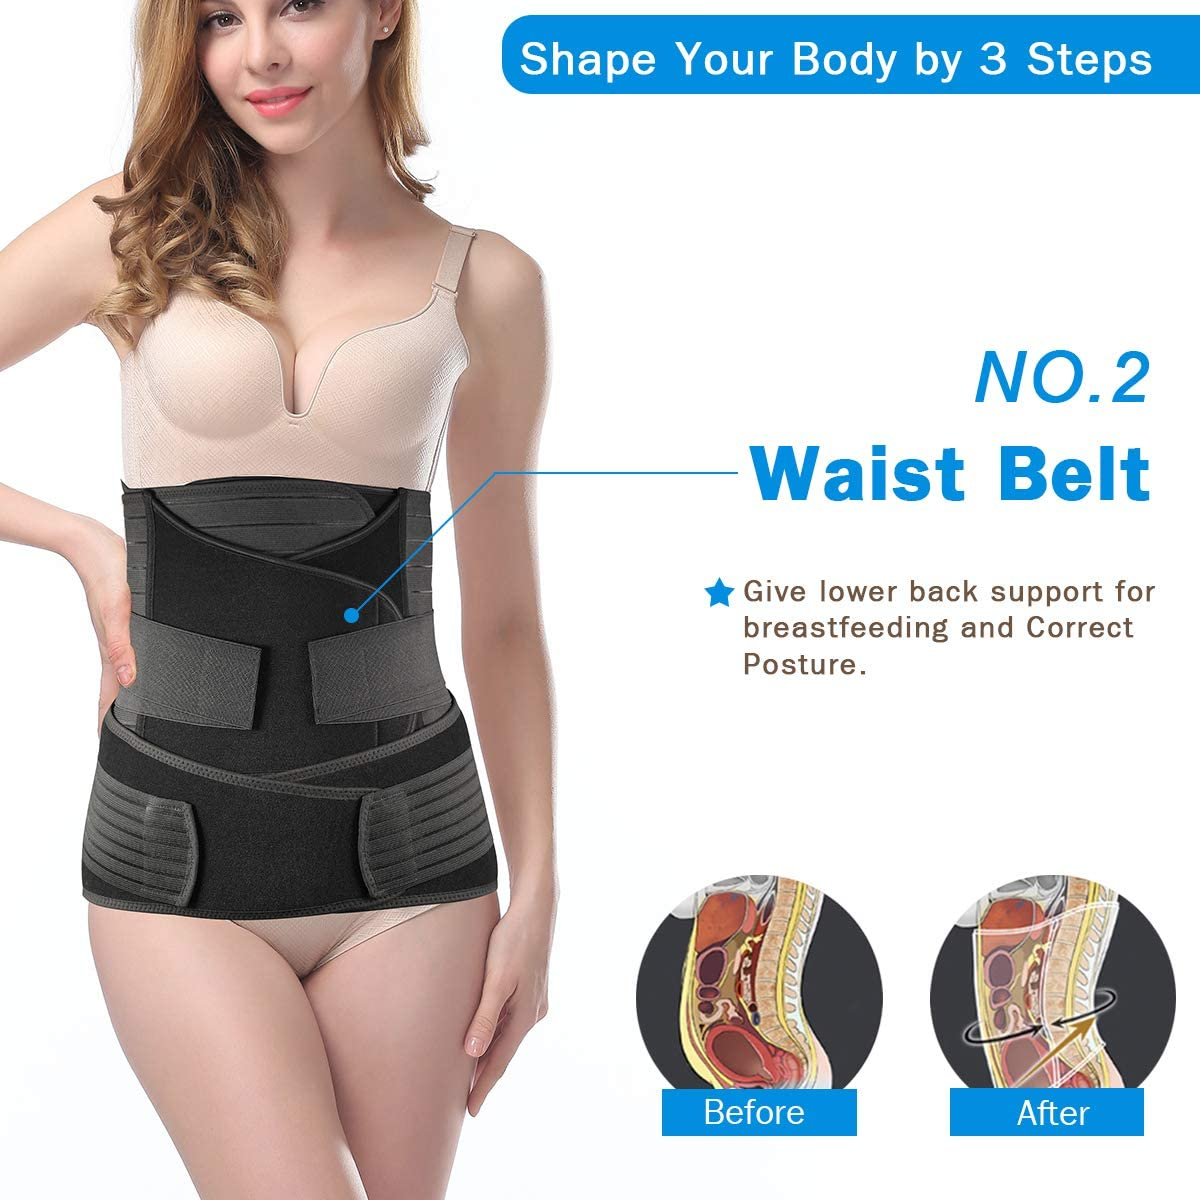 TiRain 3 in 1 Postpartum Belly Support Recovery Belly//Waist//Pelvis Belt Postpartum Belly Wrap Band